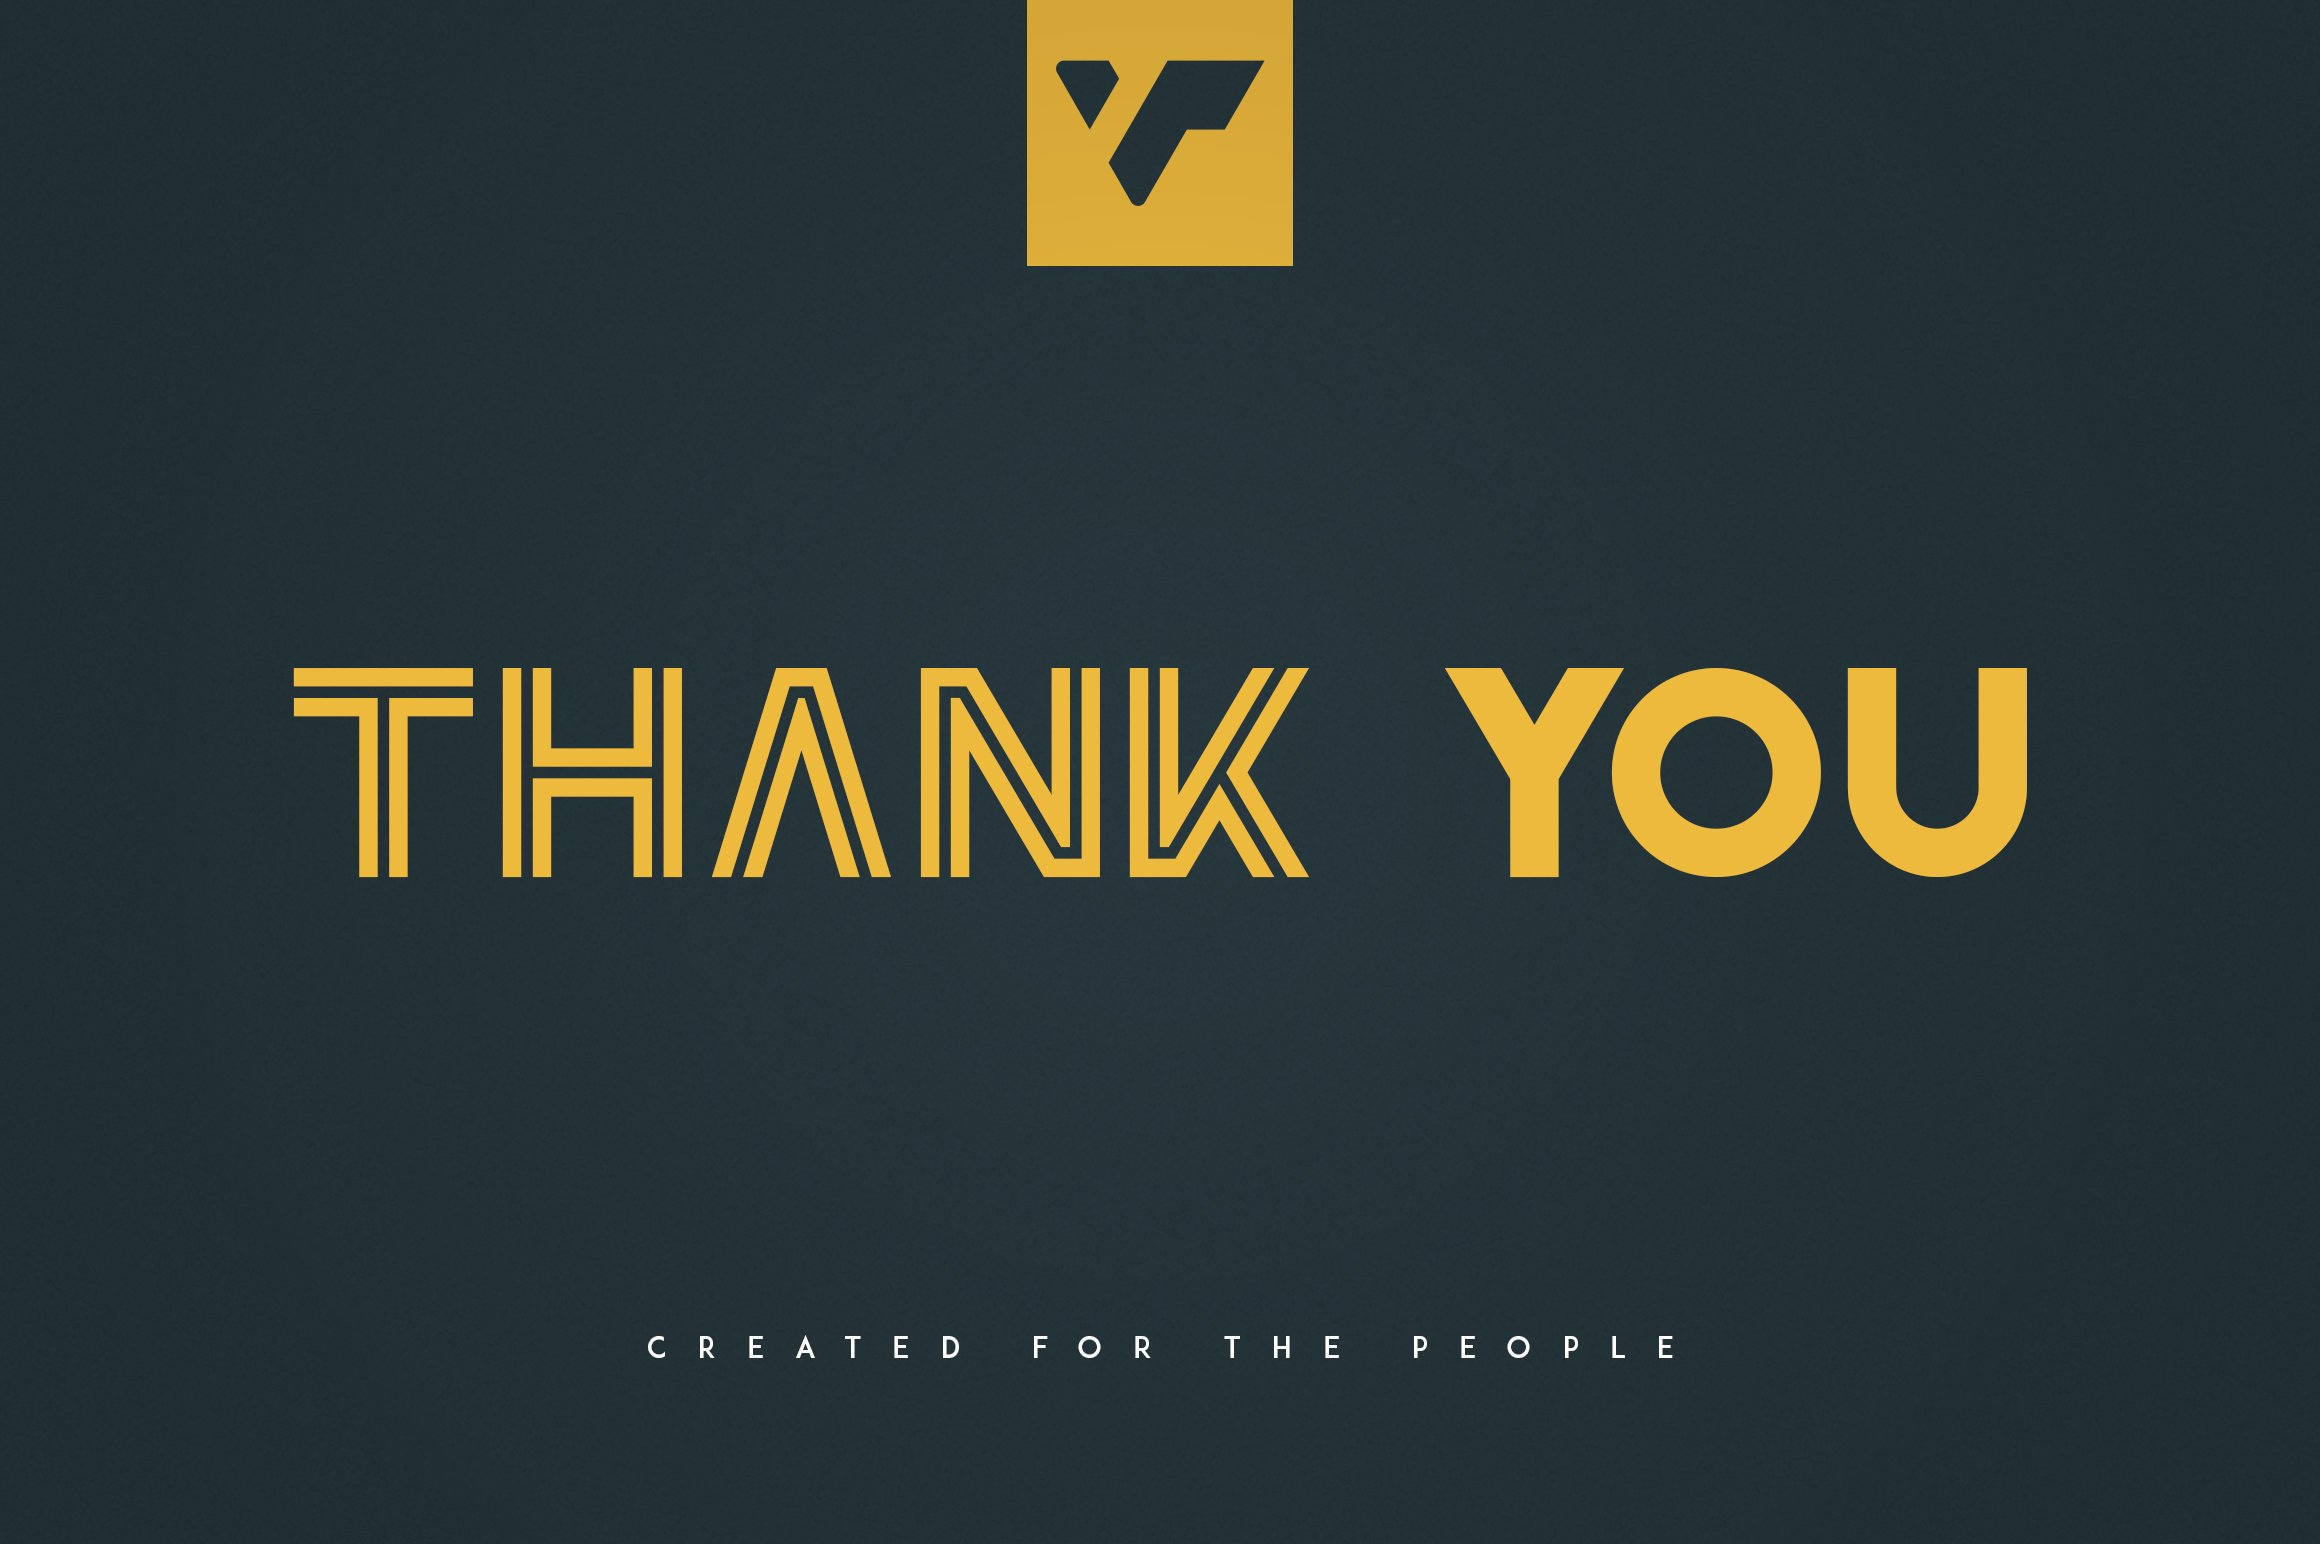 The last slide with this beautiful yellow font. Republiko.